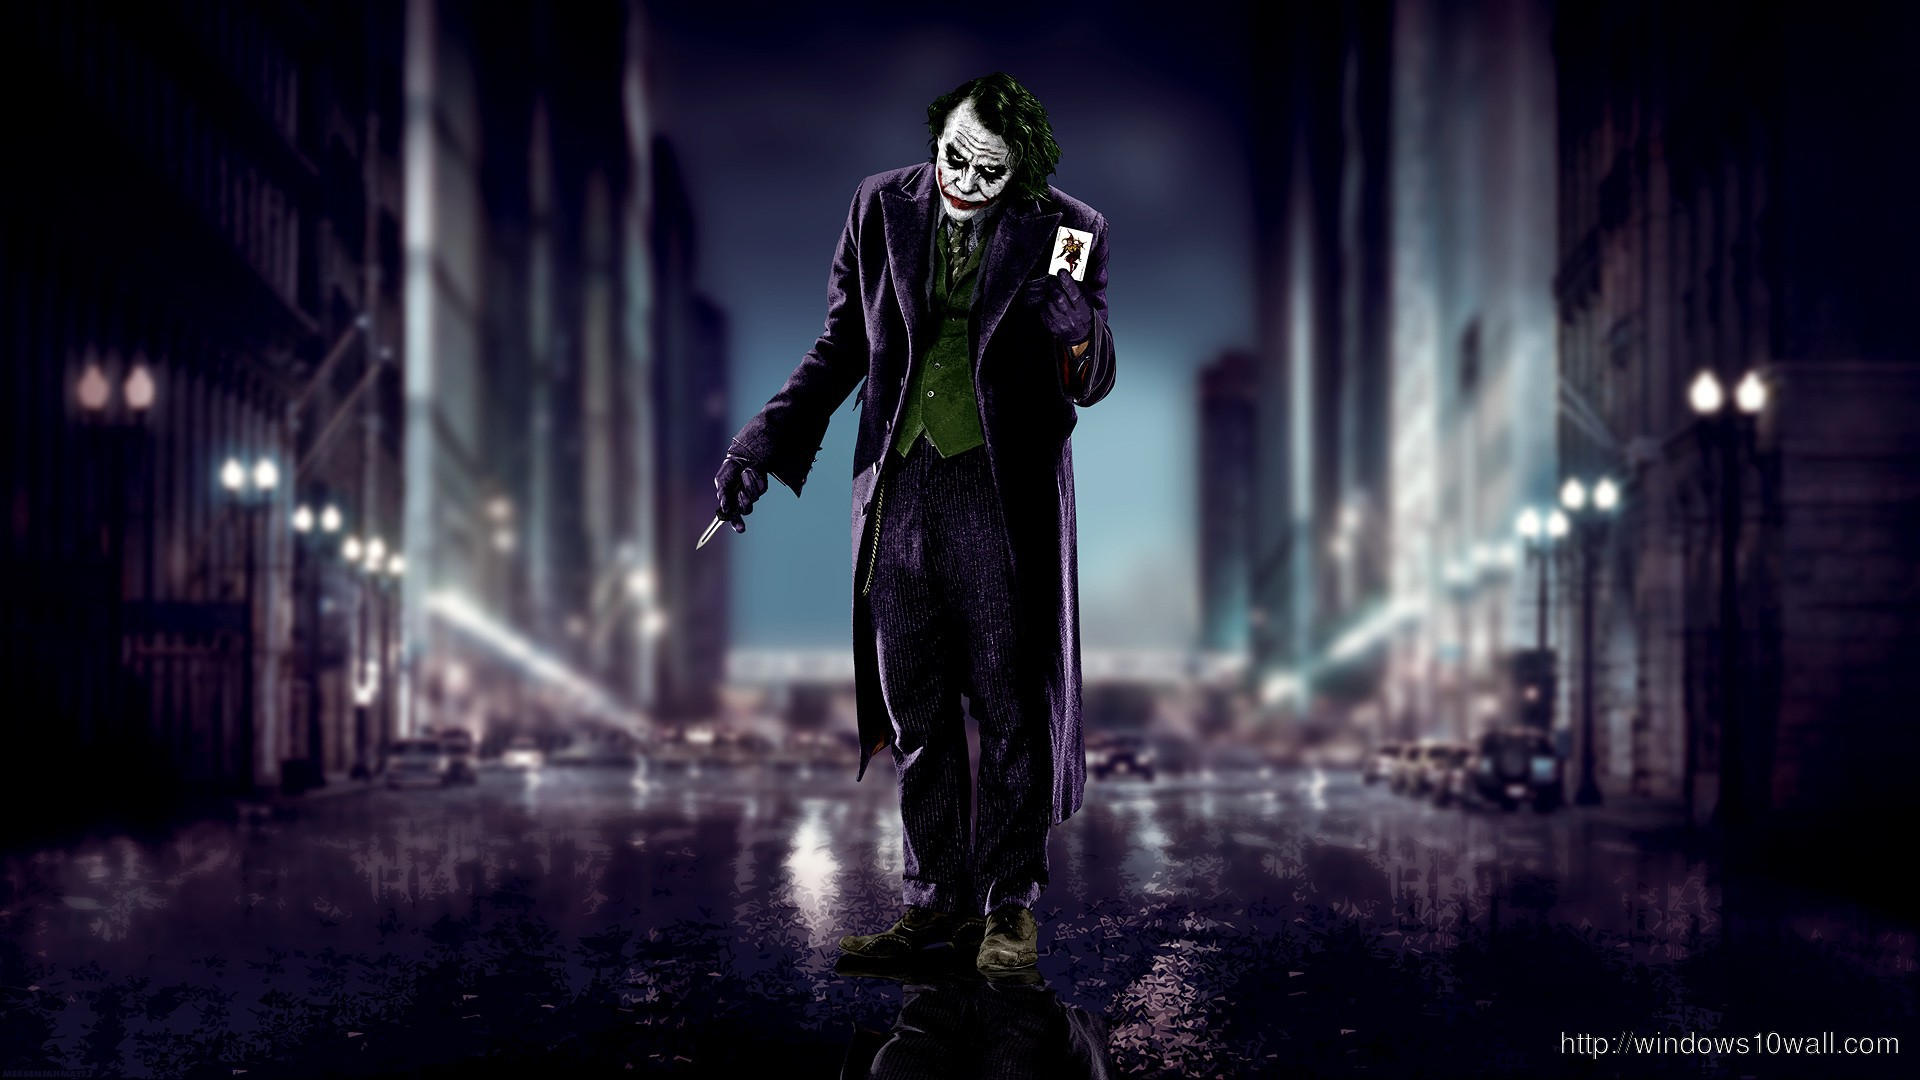 Joker In The Dark Knight Rises Movie Wallpaper Windows